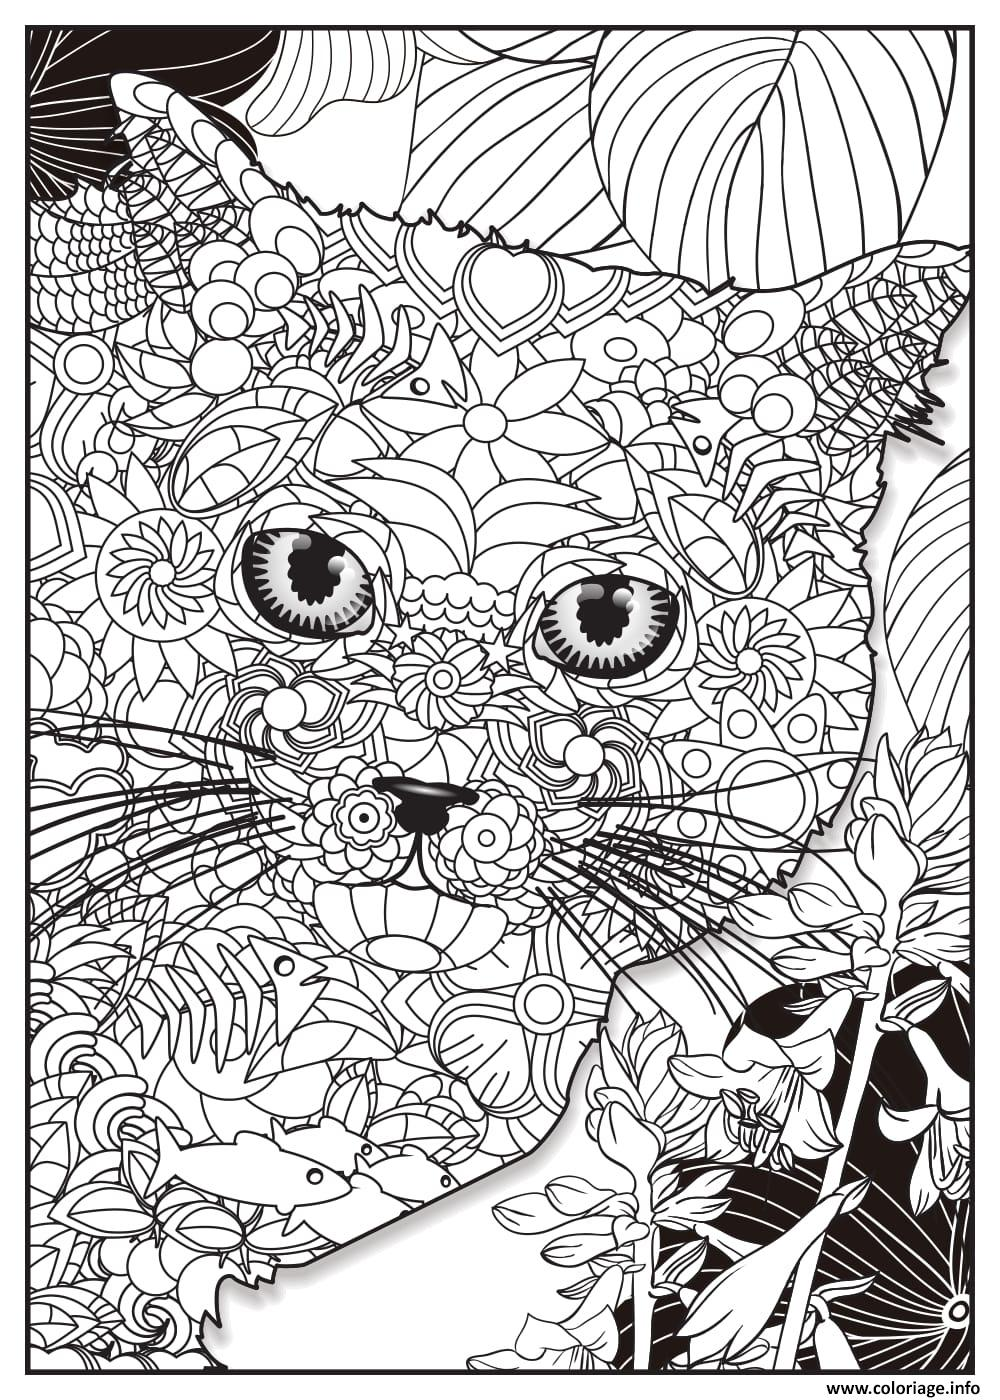 Coloriage chat british shorthair adulte animaux - Photo d animaux a imprimer gratuitement ...